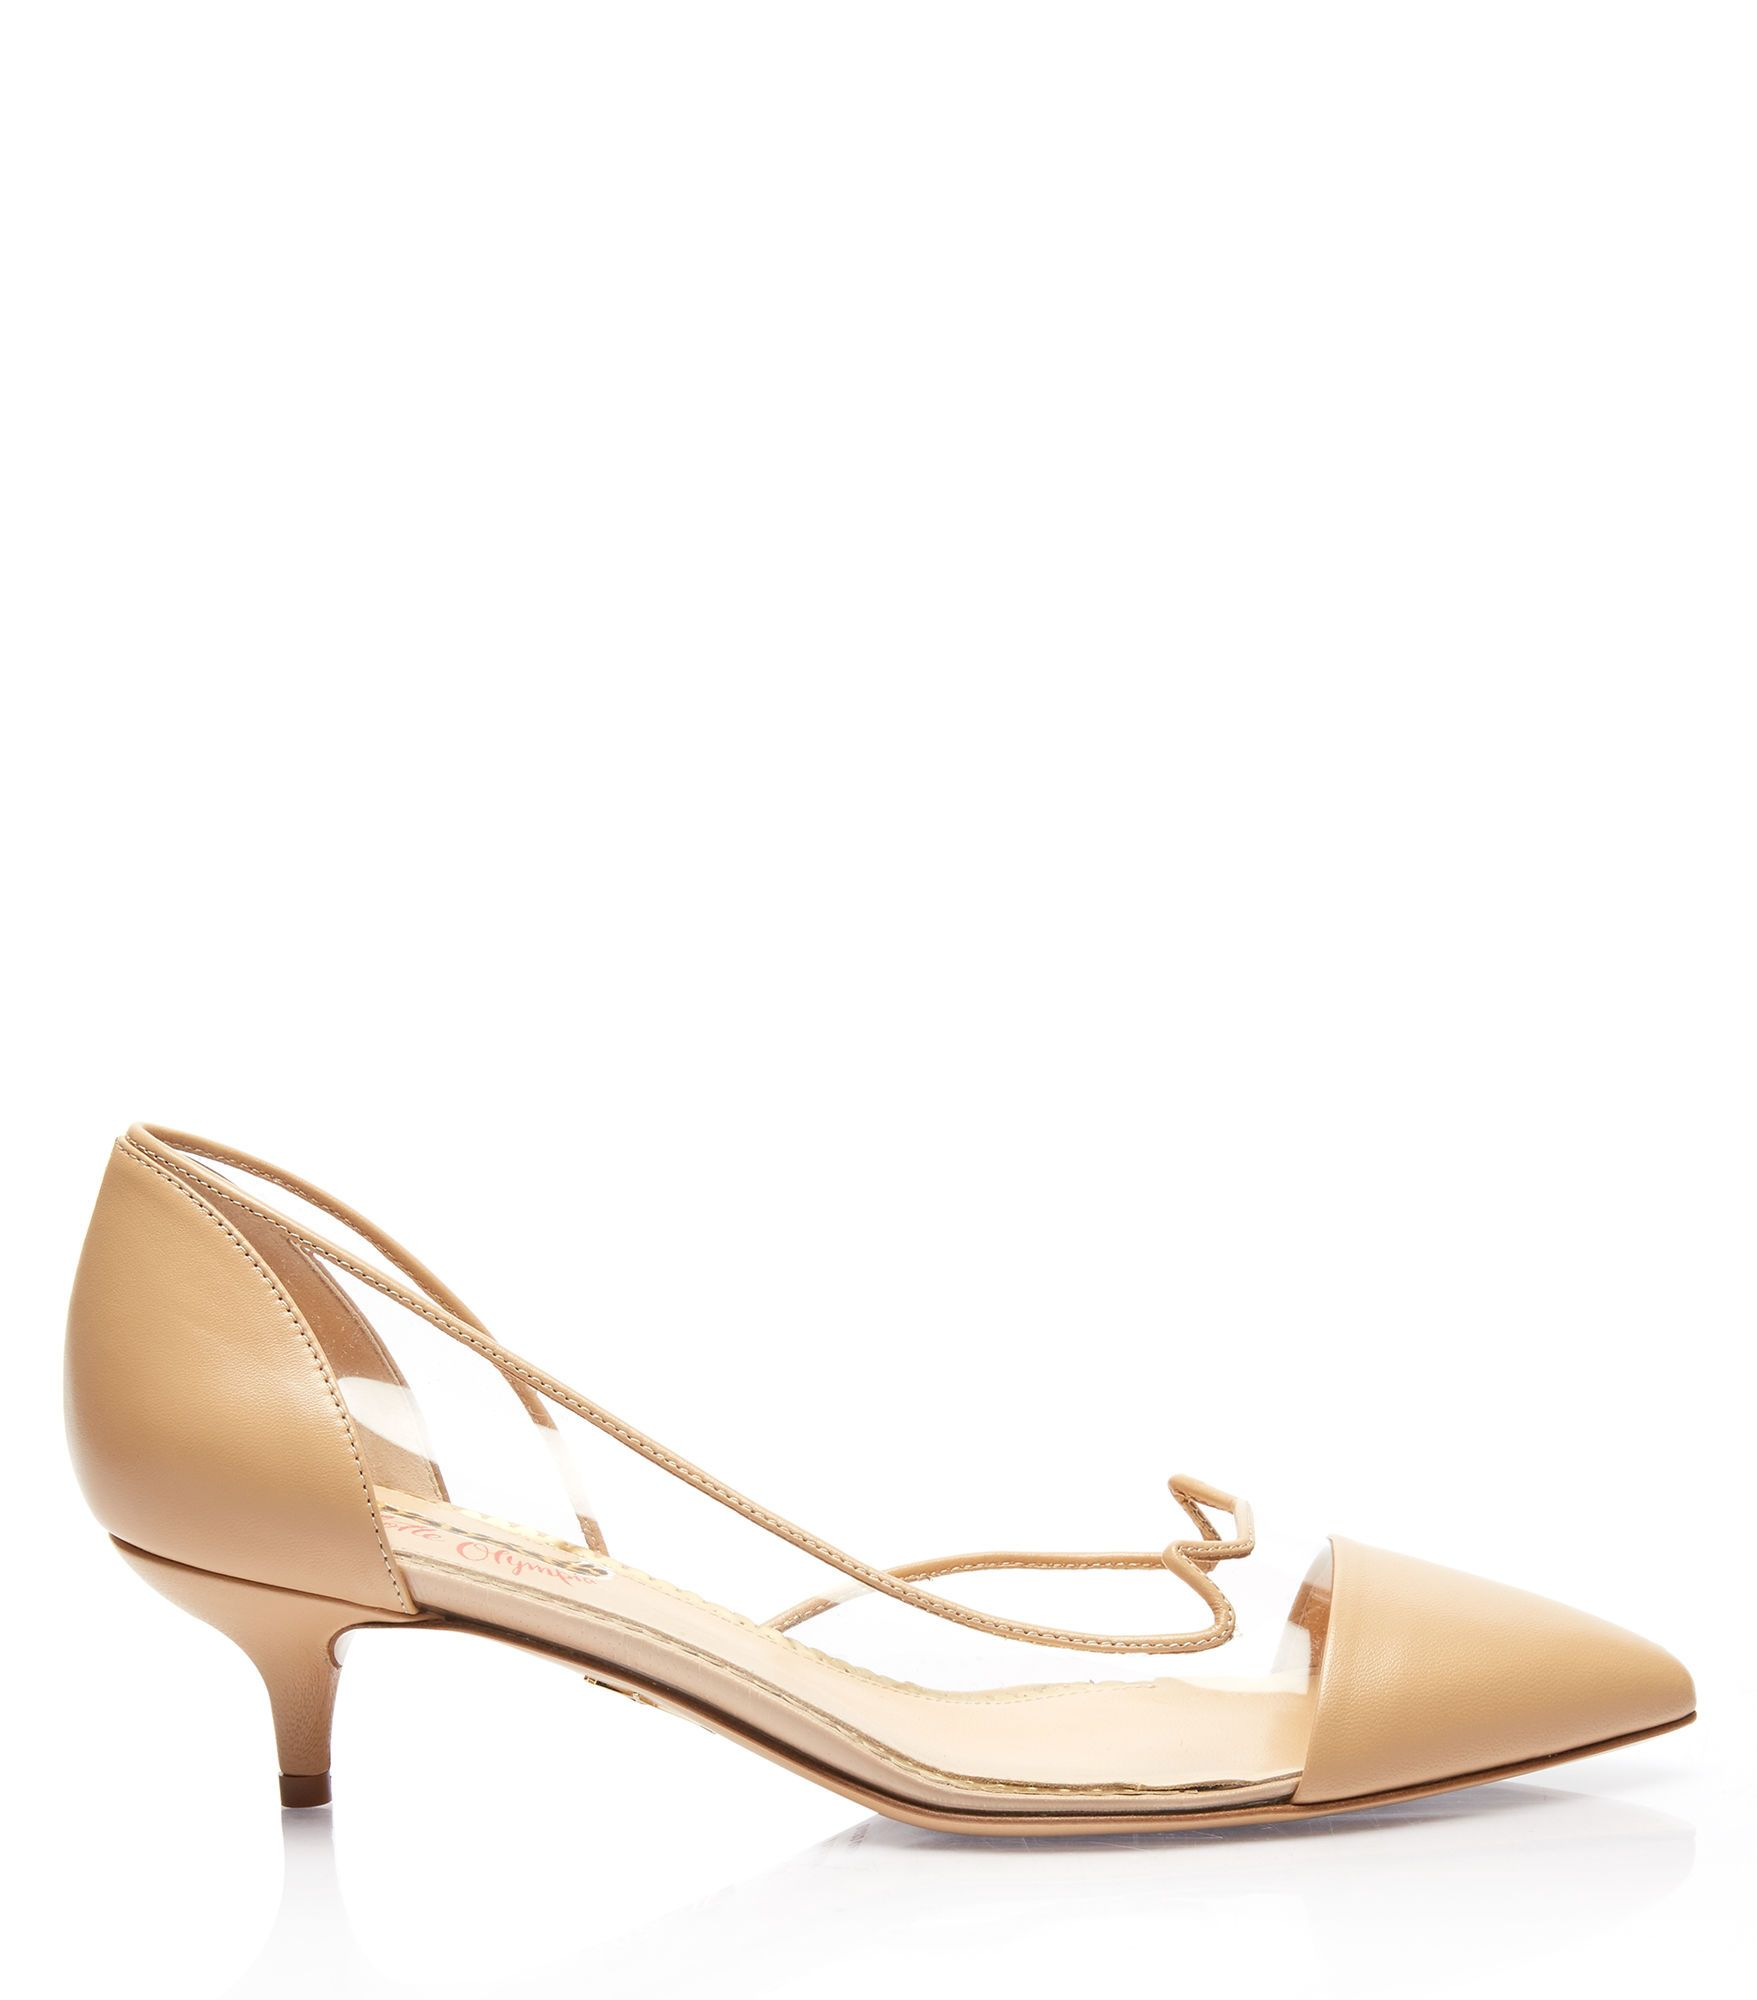 Pin On Charlotte Olympia